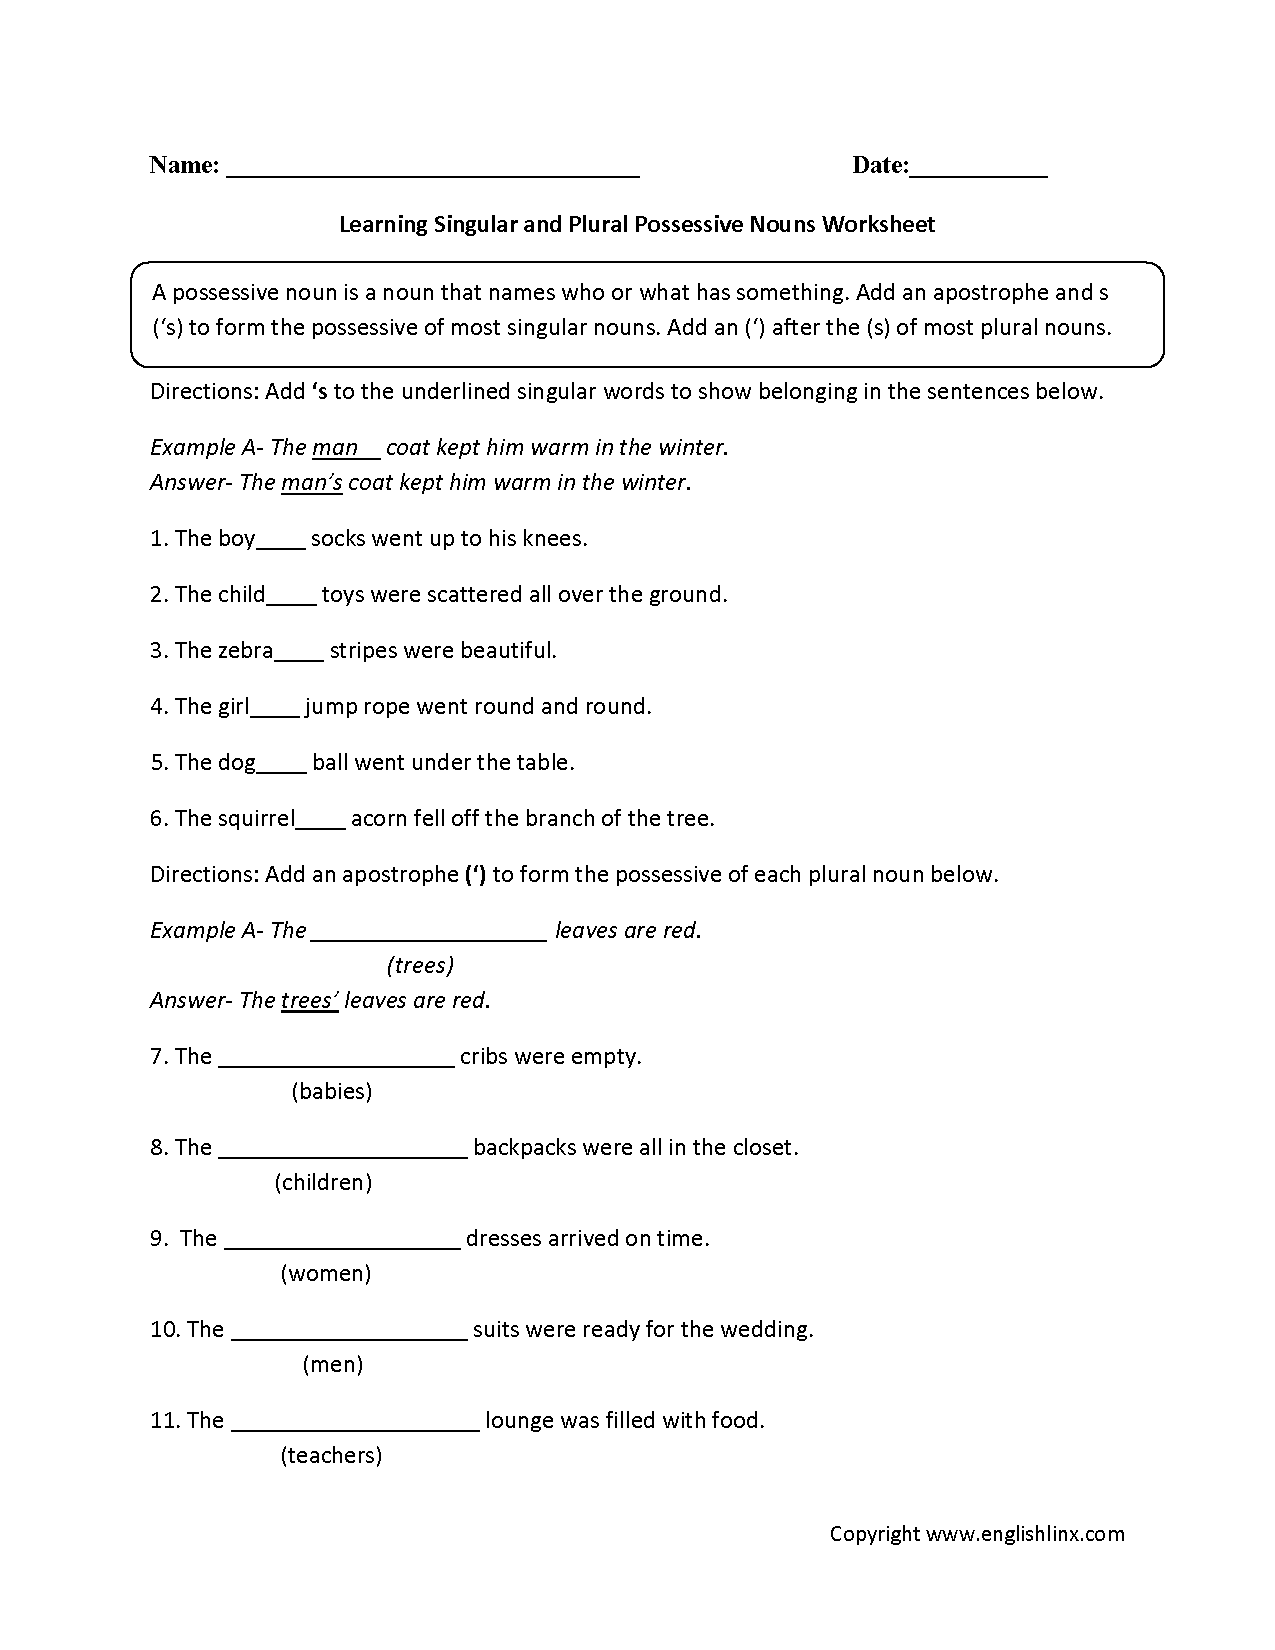 Worksheets Noun Worksheets For Kindergarten possessive nouns worksheets 1st grade free library 2 homework an introduction pronoun and